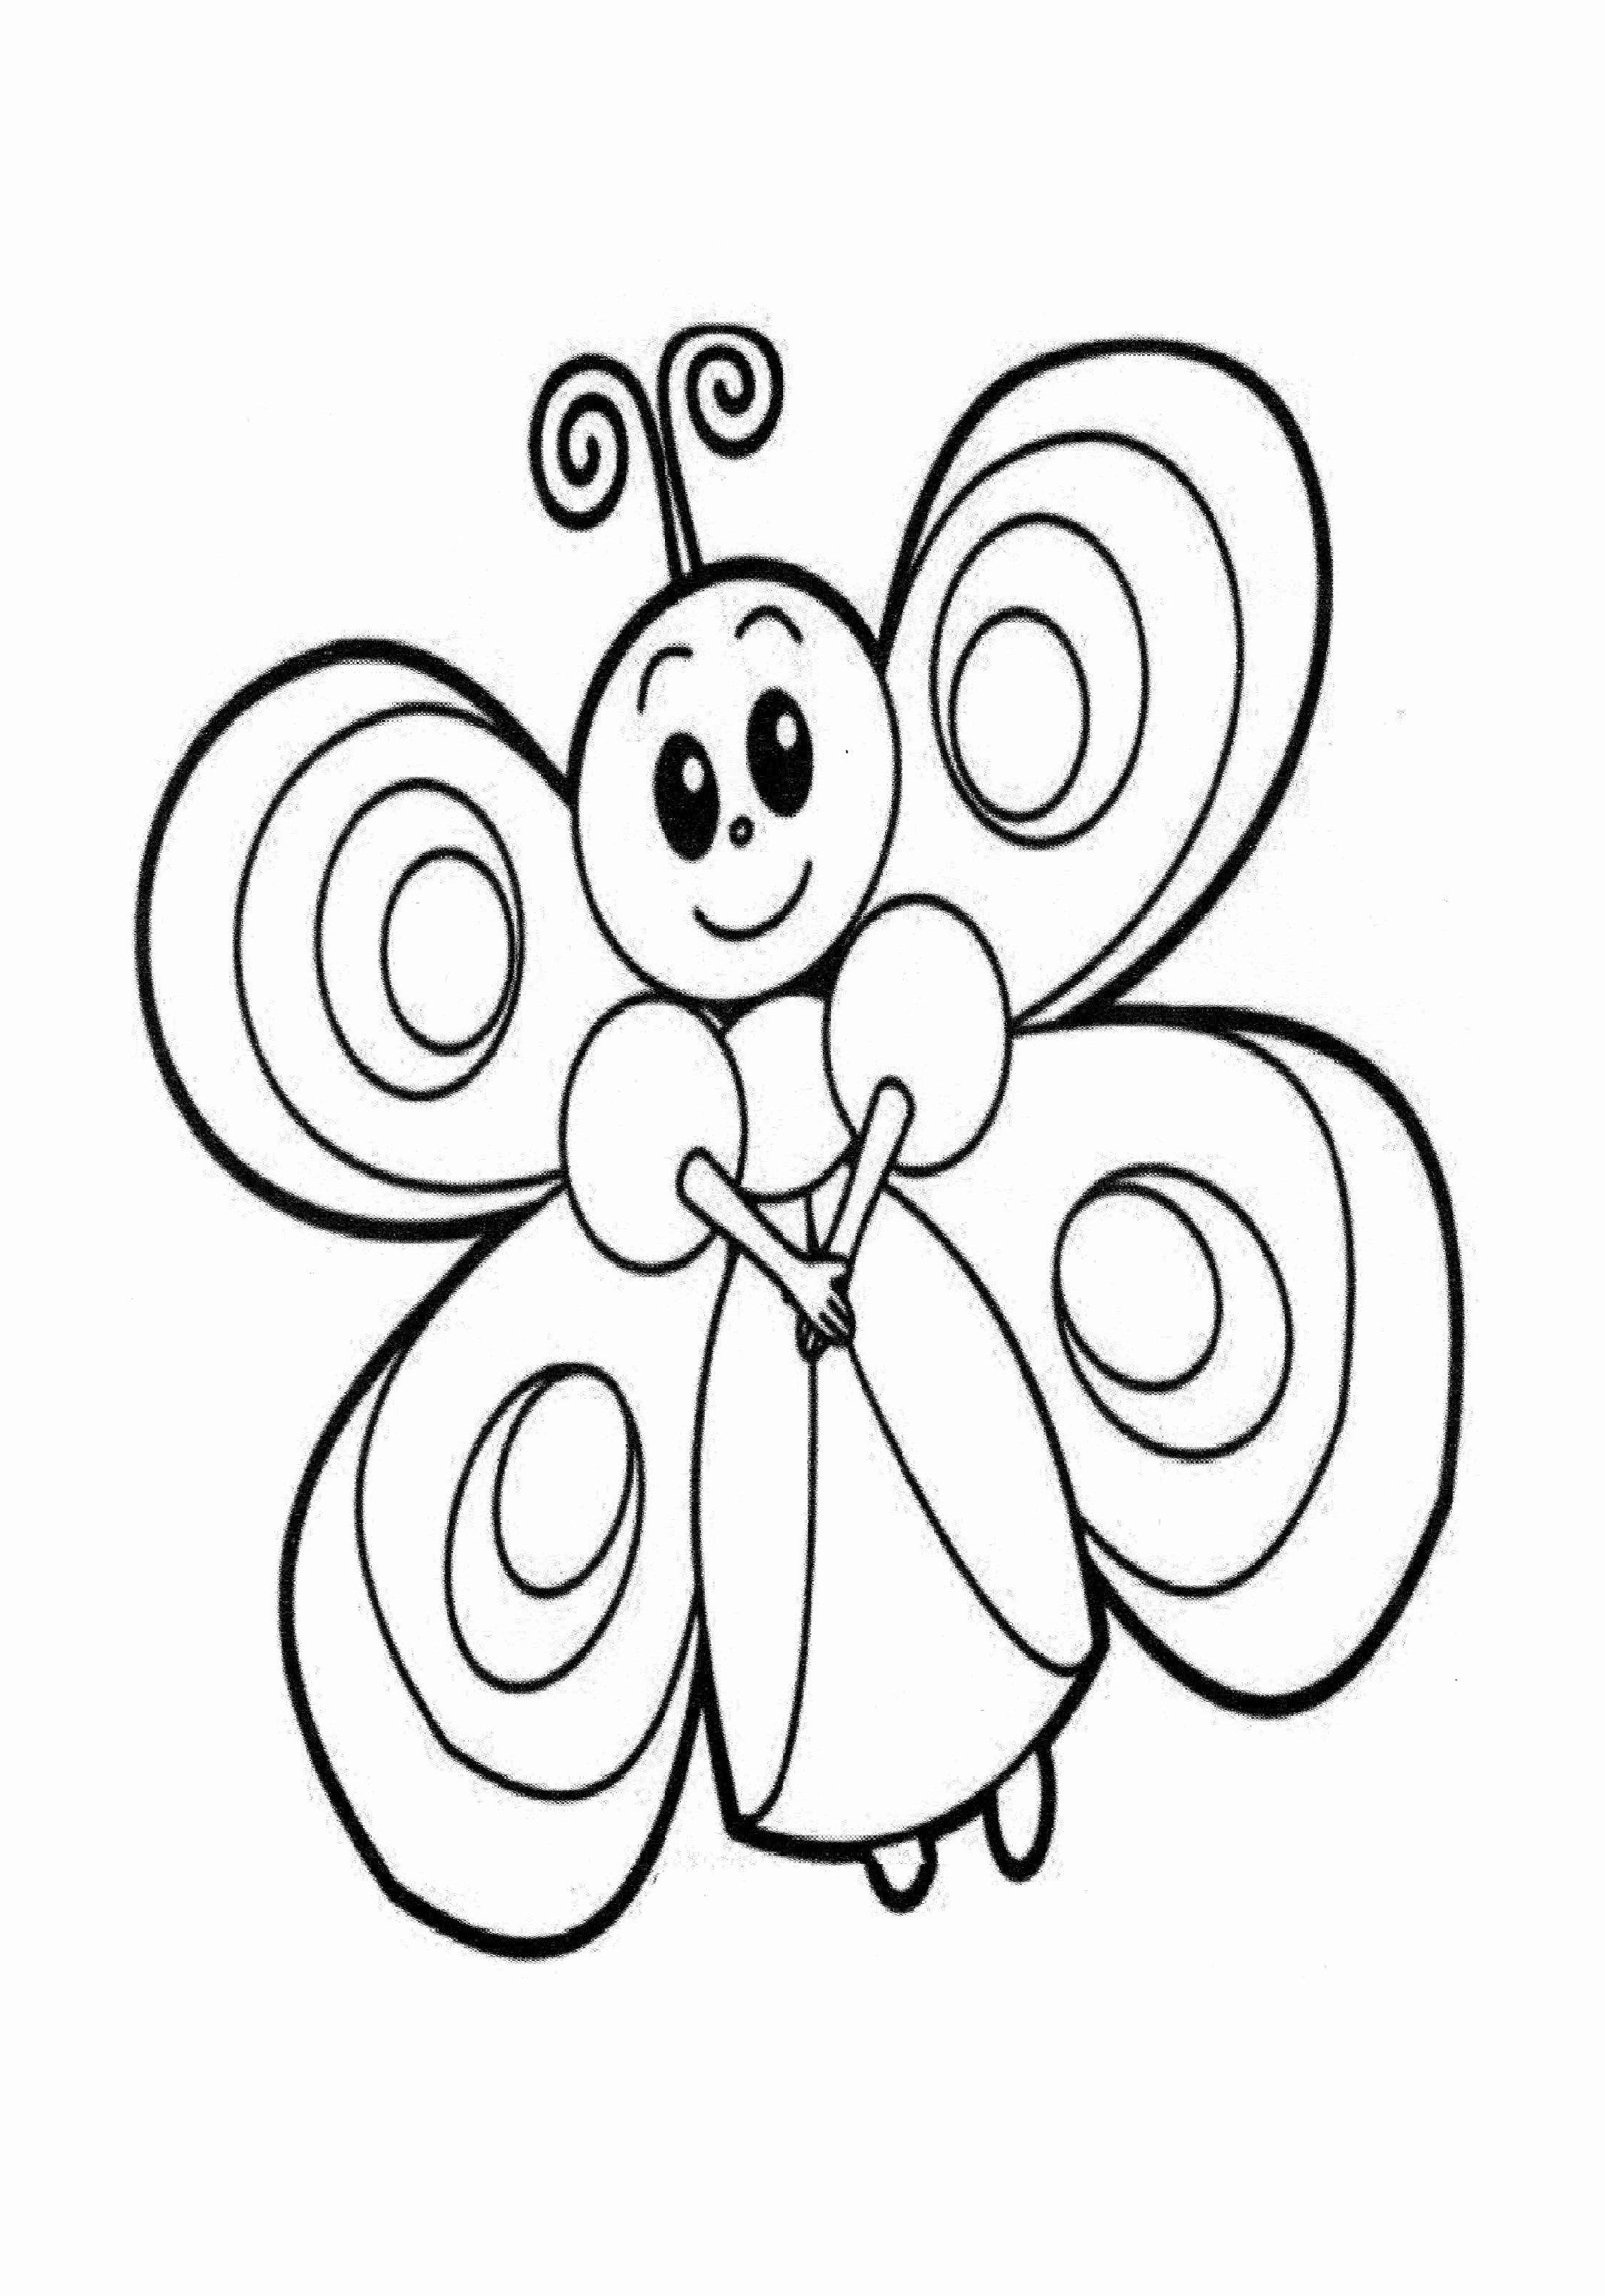 Coloring Activities For 7 Year Old Inspirational Coloring Sheets Remarkable Spring Worksheets For Pr Butterfly Coloring Page Coloring Pages Bear Coloring Pages [ 3056 x 2136 Pixel ]